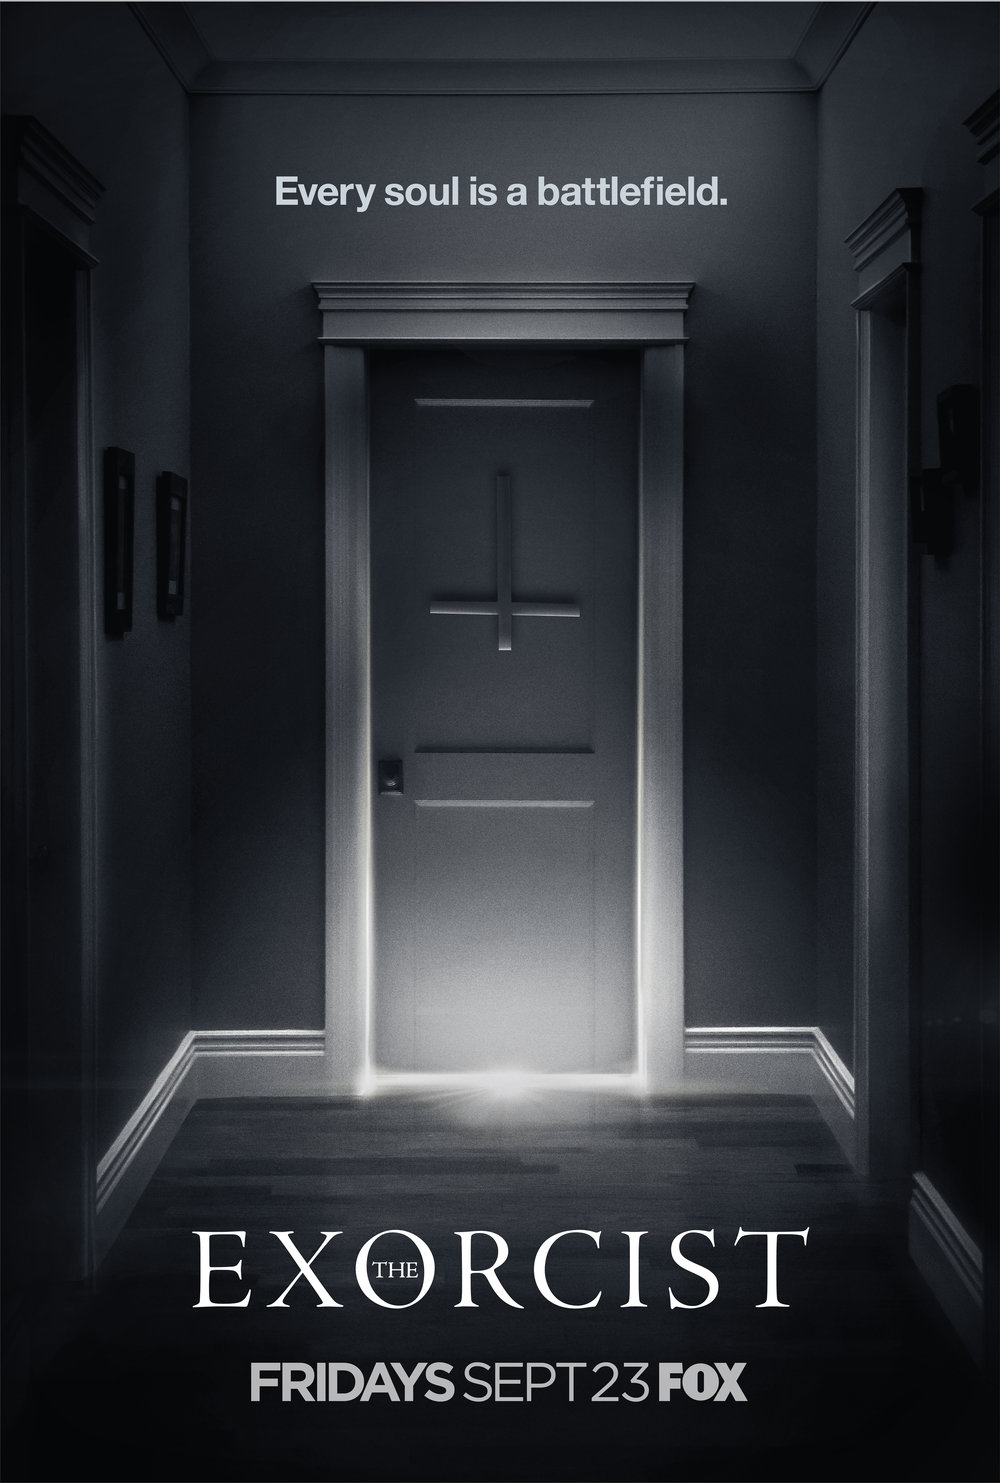 Exorcist-The_01_Dom_Mini_Poster_Hallway_Final.jpg